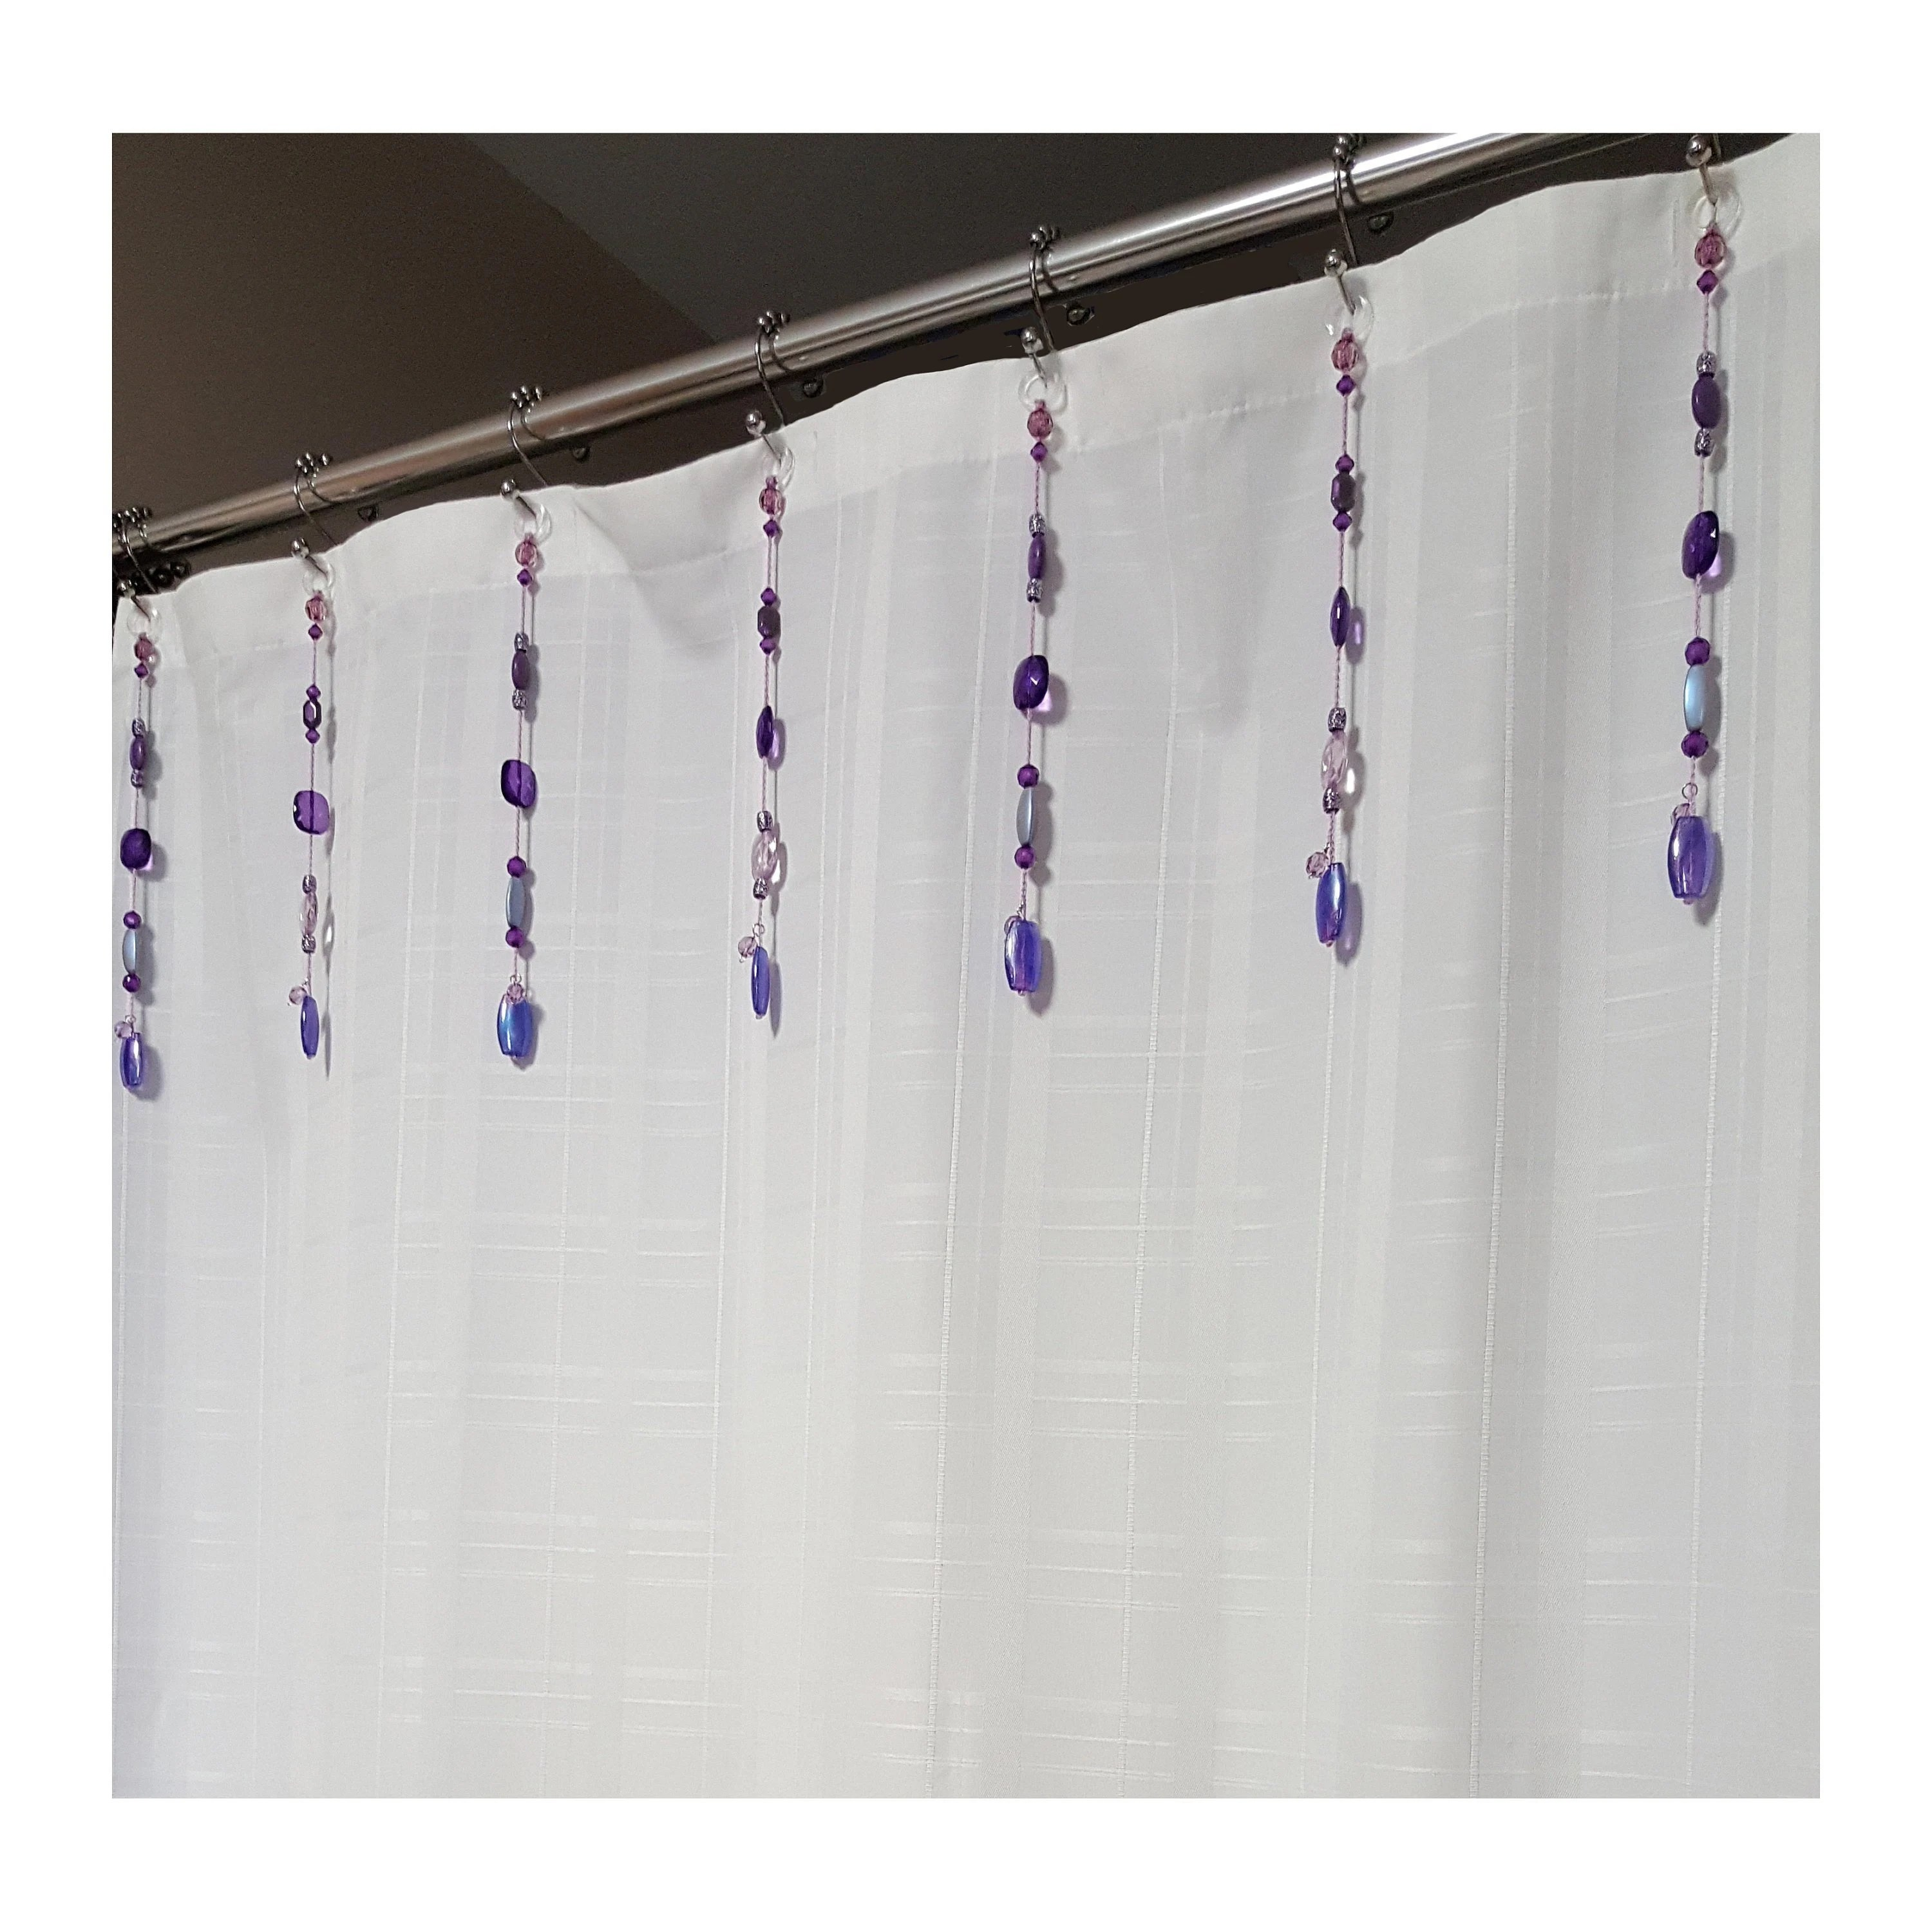 new shower curtain bling hook ring accessory bead strands sent of 12 10 chunky beads purple and silver color